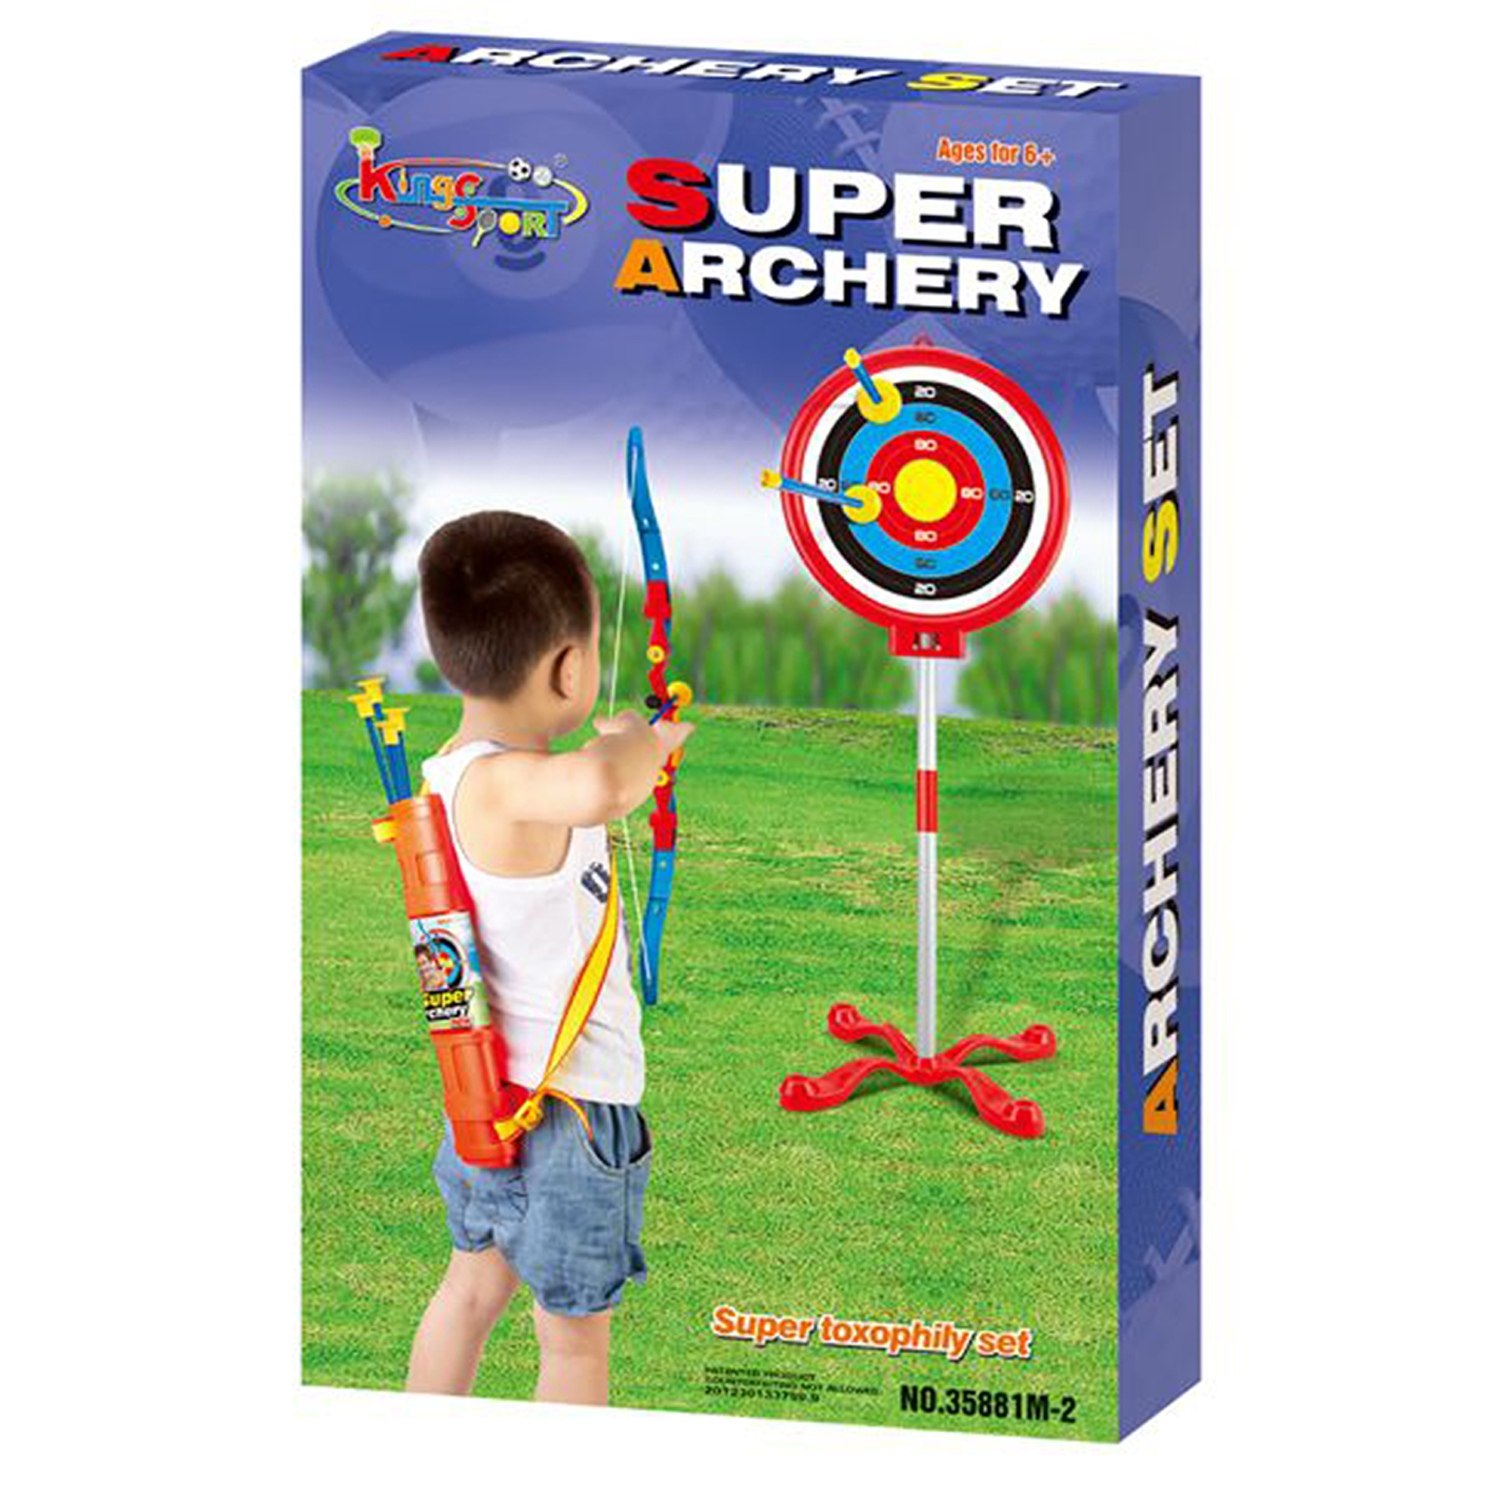 Target Toys For Big Boys : Kids large bow and arrow set arrows target toy archery